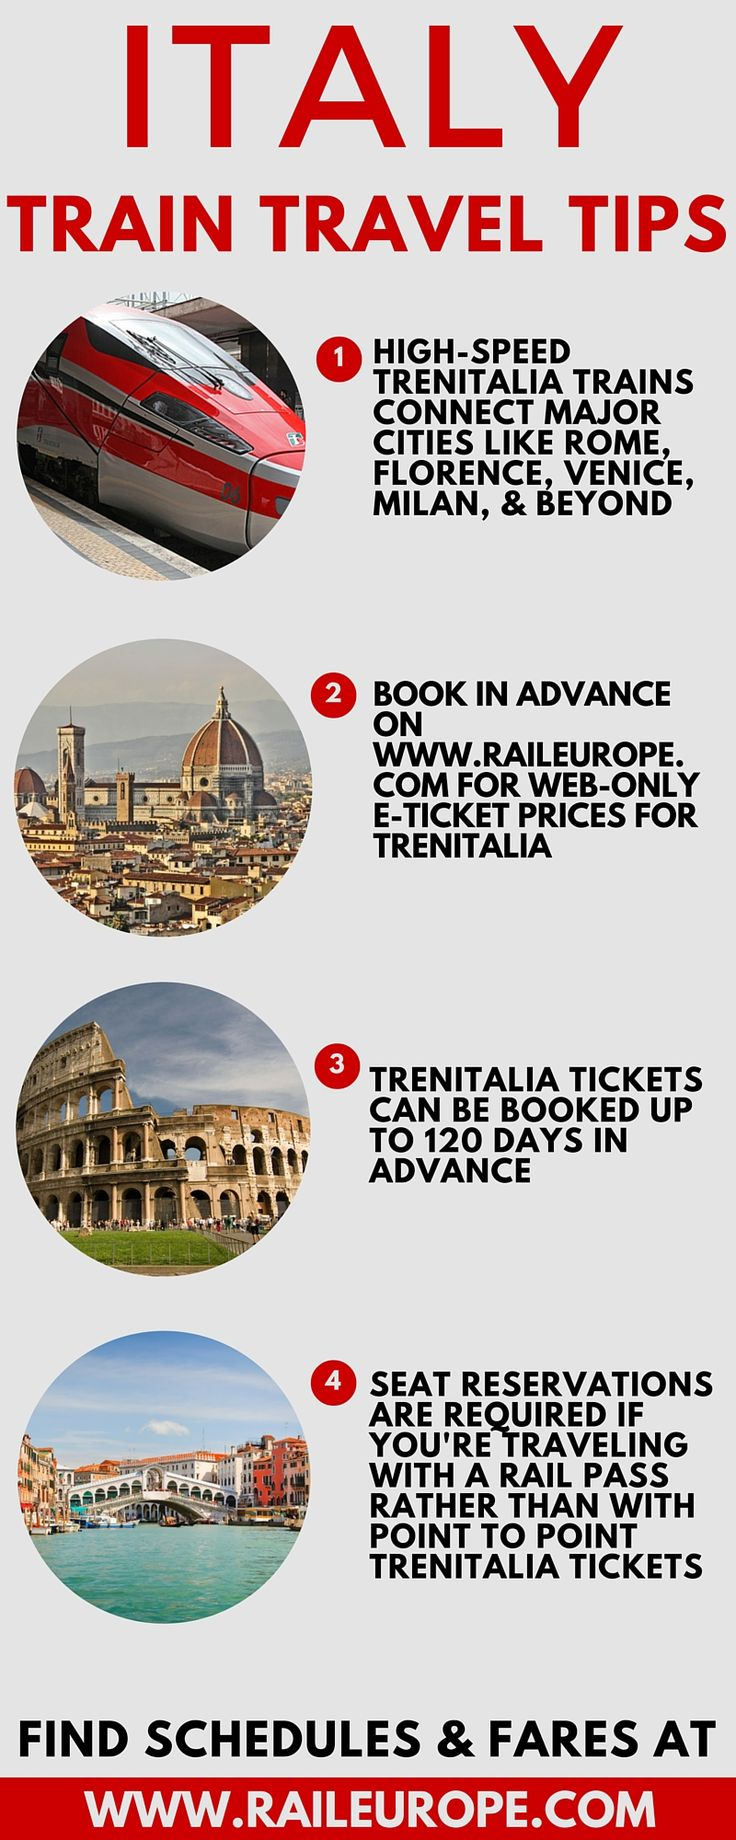 Travelling through Italy this summer? Check out these train travel tips!